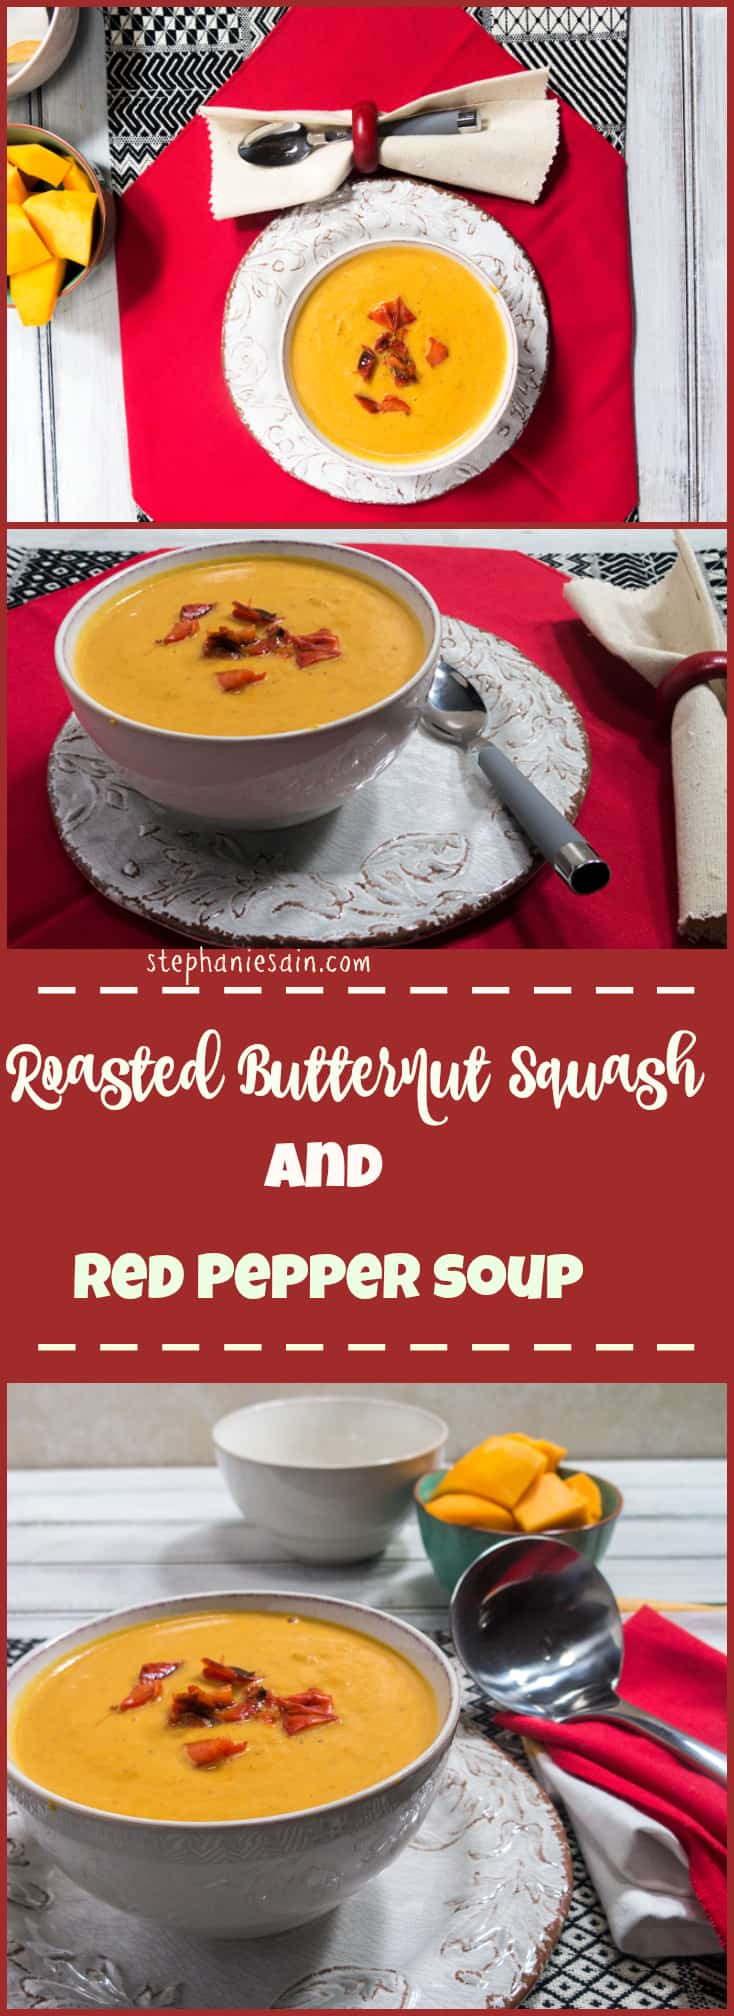 Roasted Butternut Squash & Red Pepper Soup is a creamy flavorful soup that is perfect for lunch or dinner anytime. Vegetarian and Gluten Free.